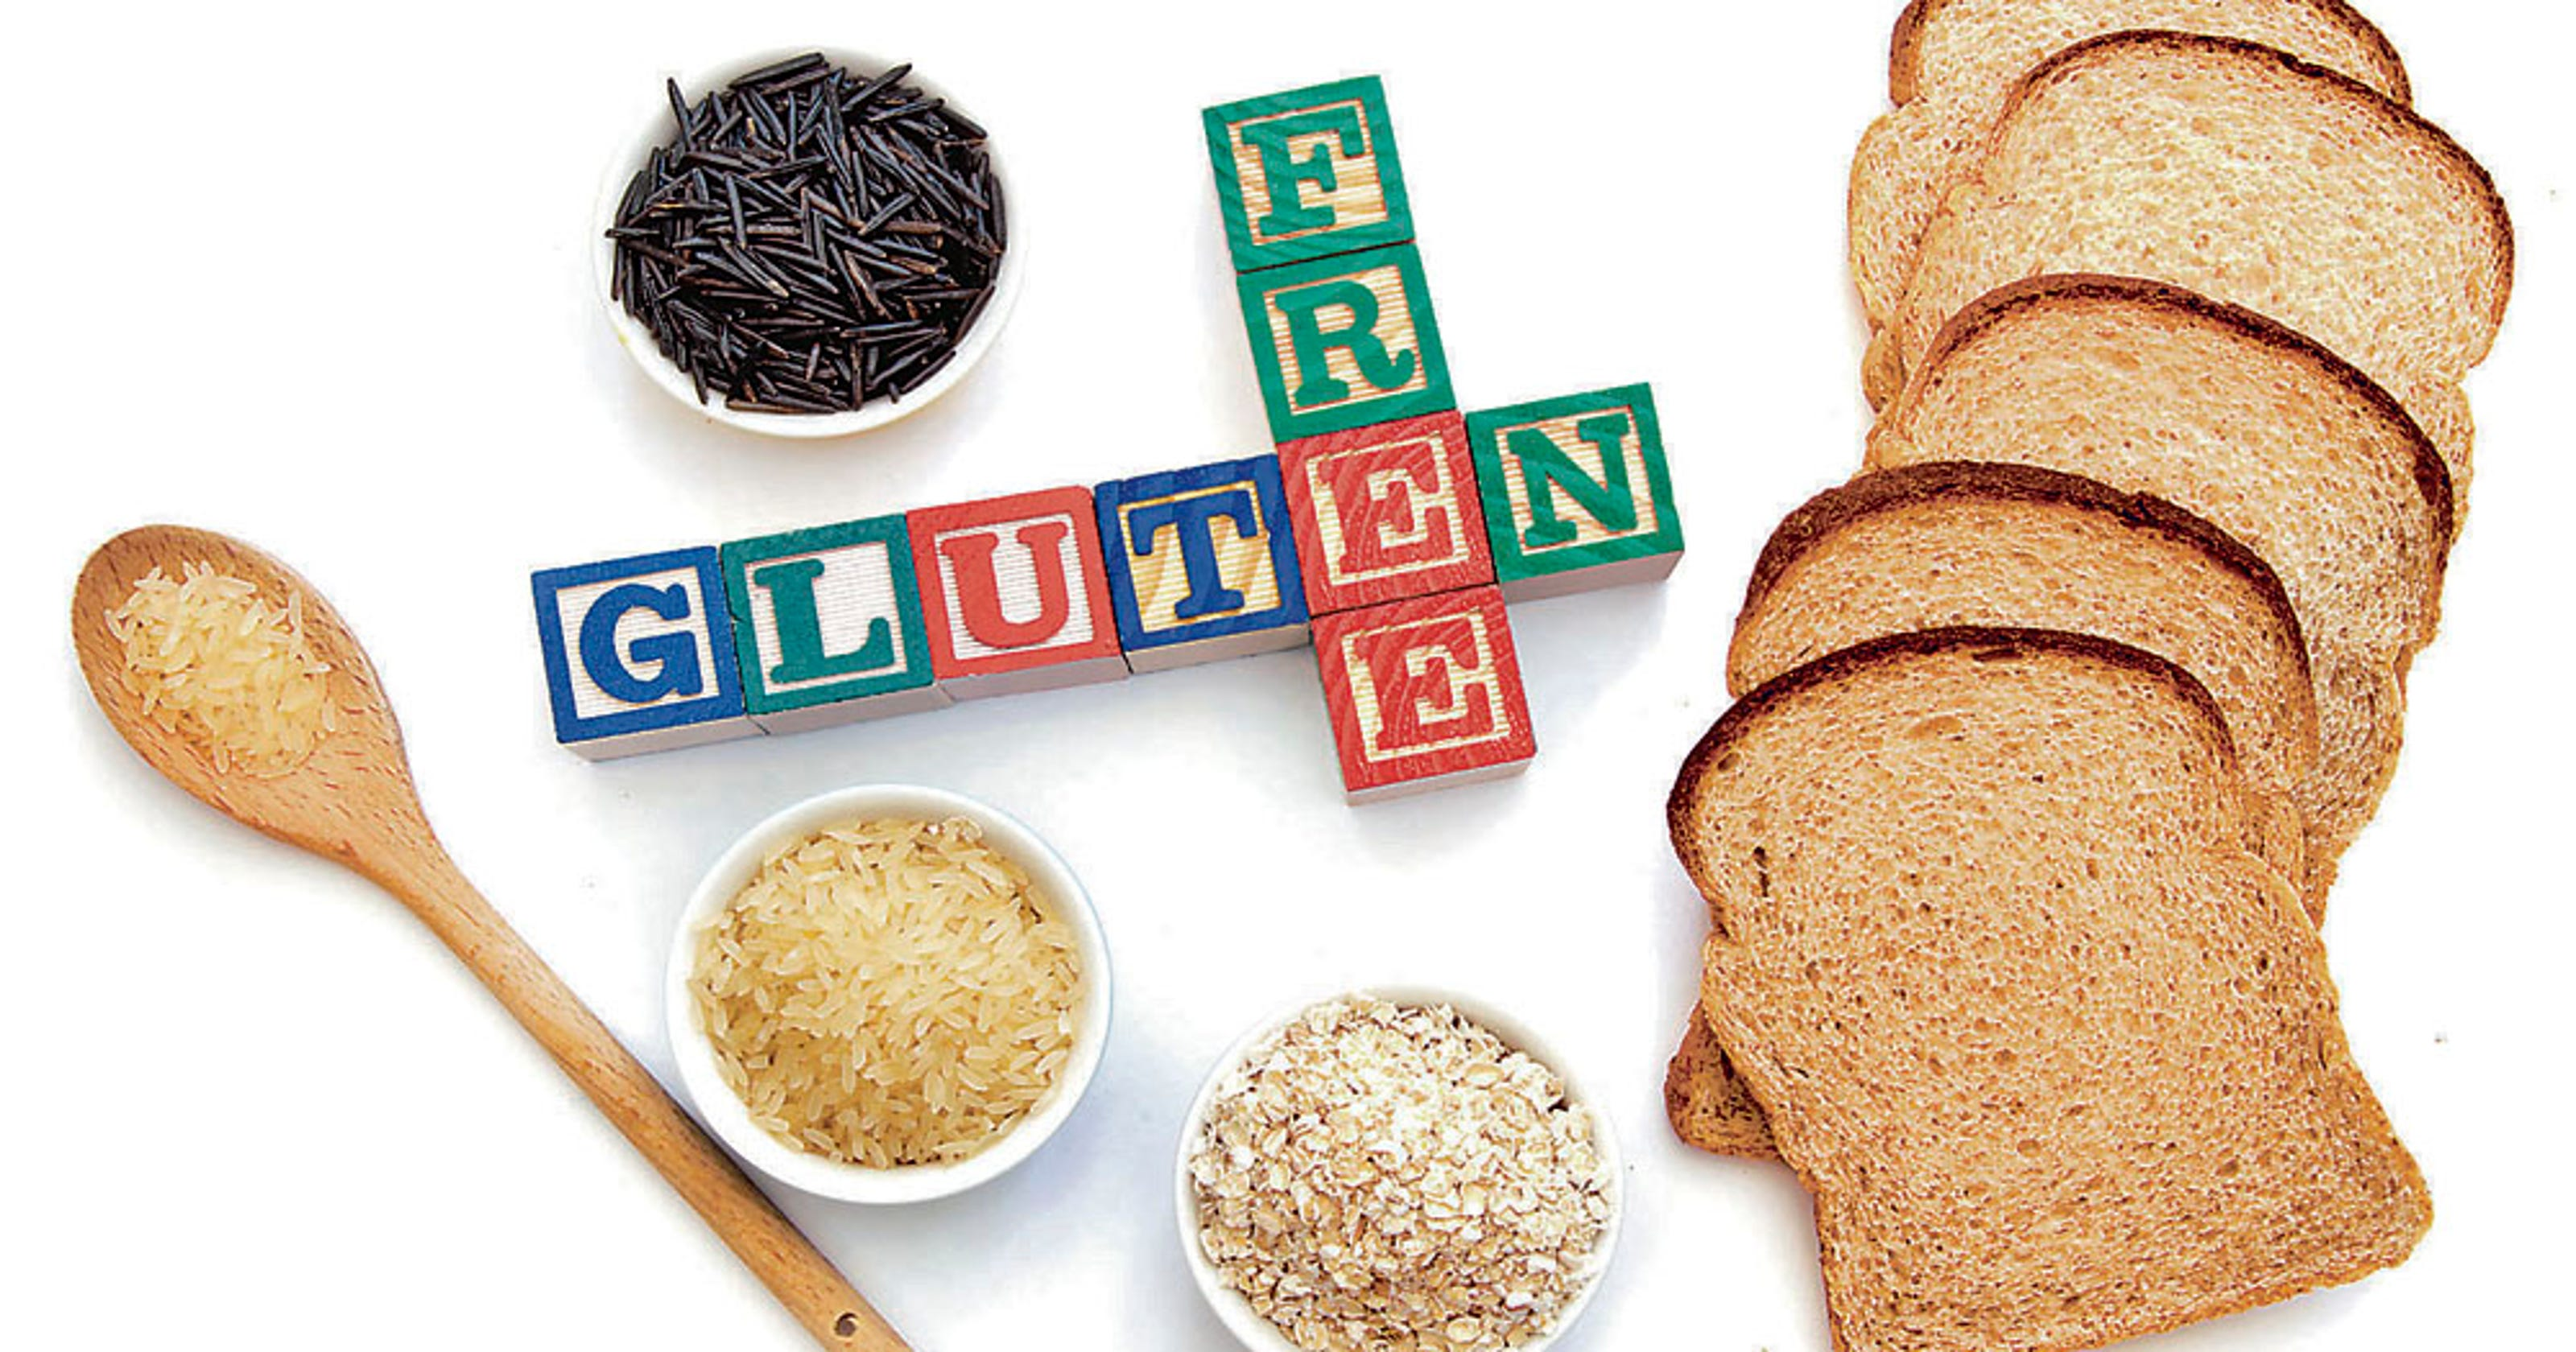 Life after a gluten intolerance diagnosis